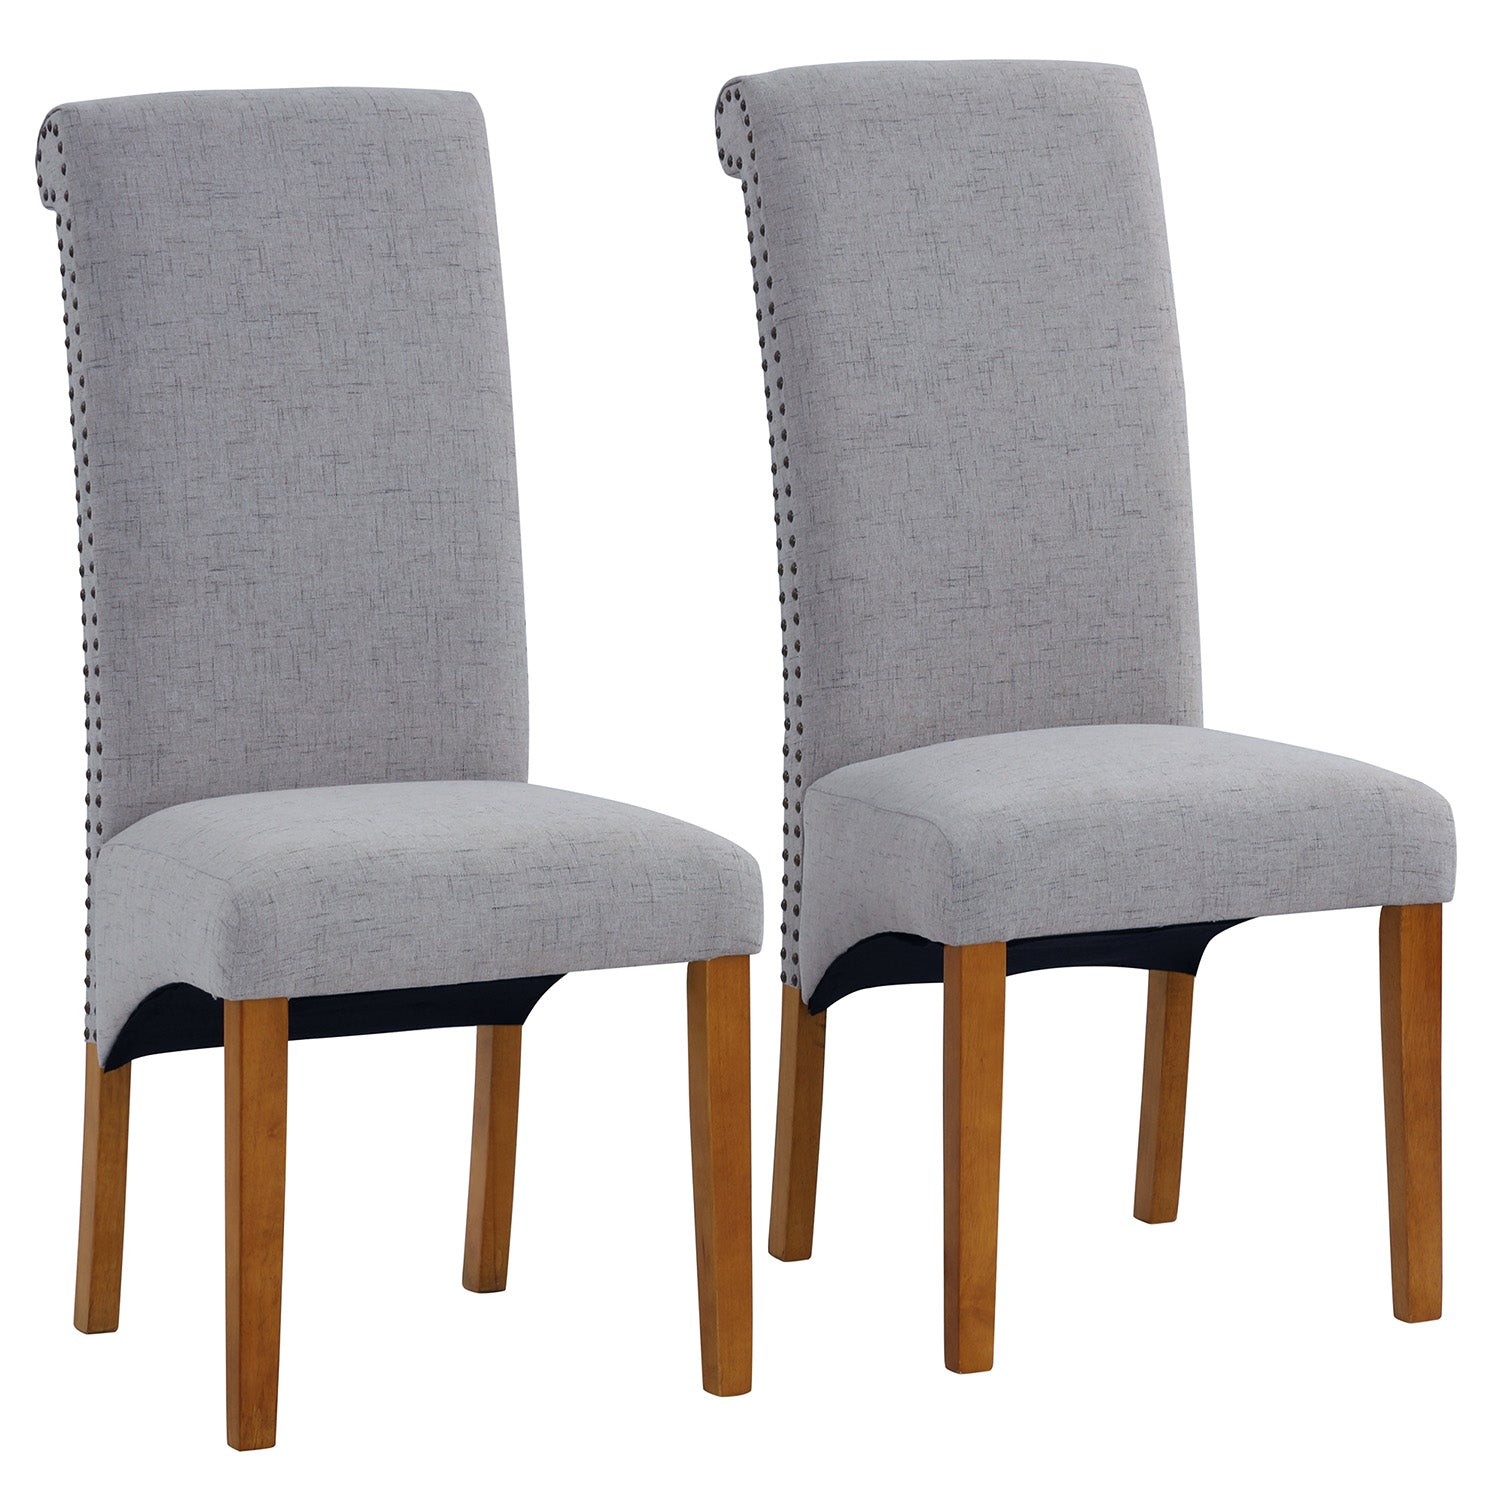 Light Slate Gray Dining Chair Set Fabric Padded Side Chair with Solid Wood Legs Nailed Trim Living Room BH486200